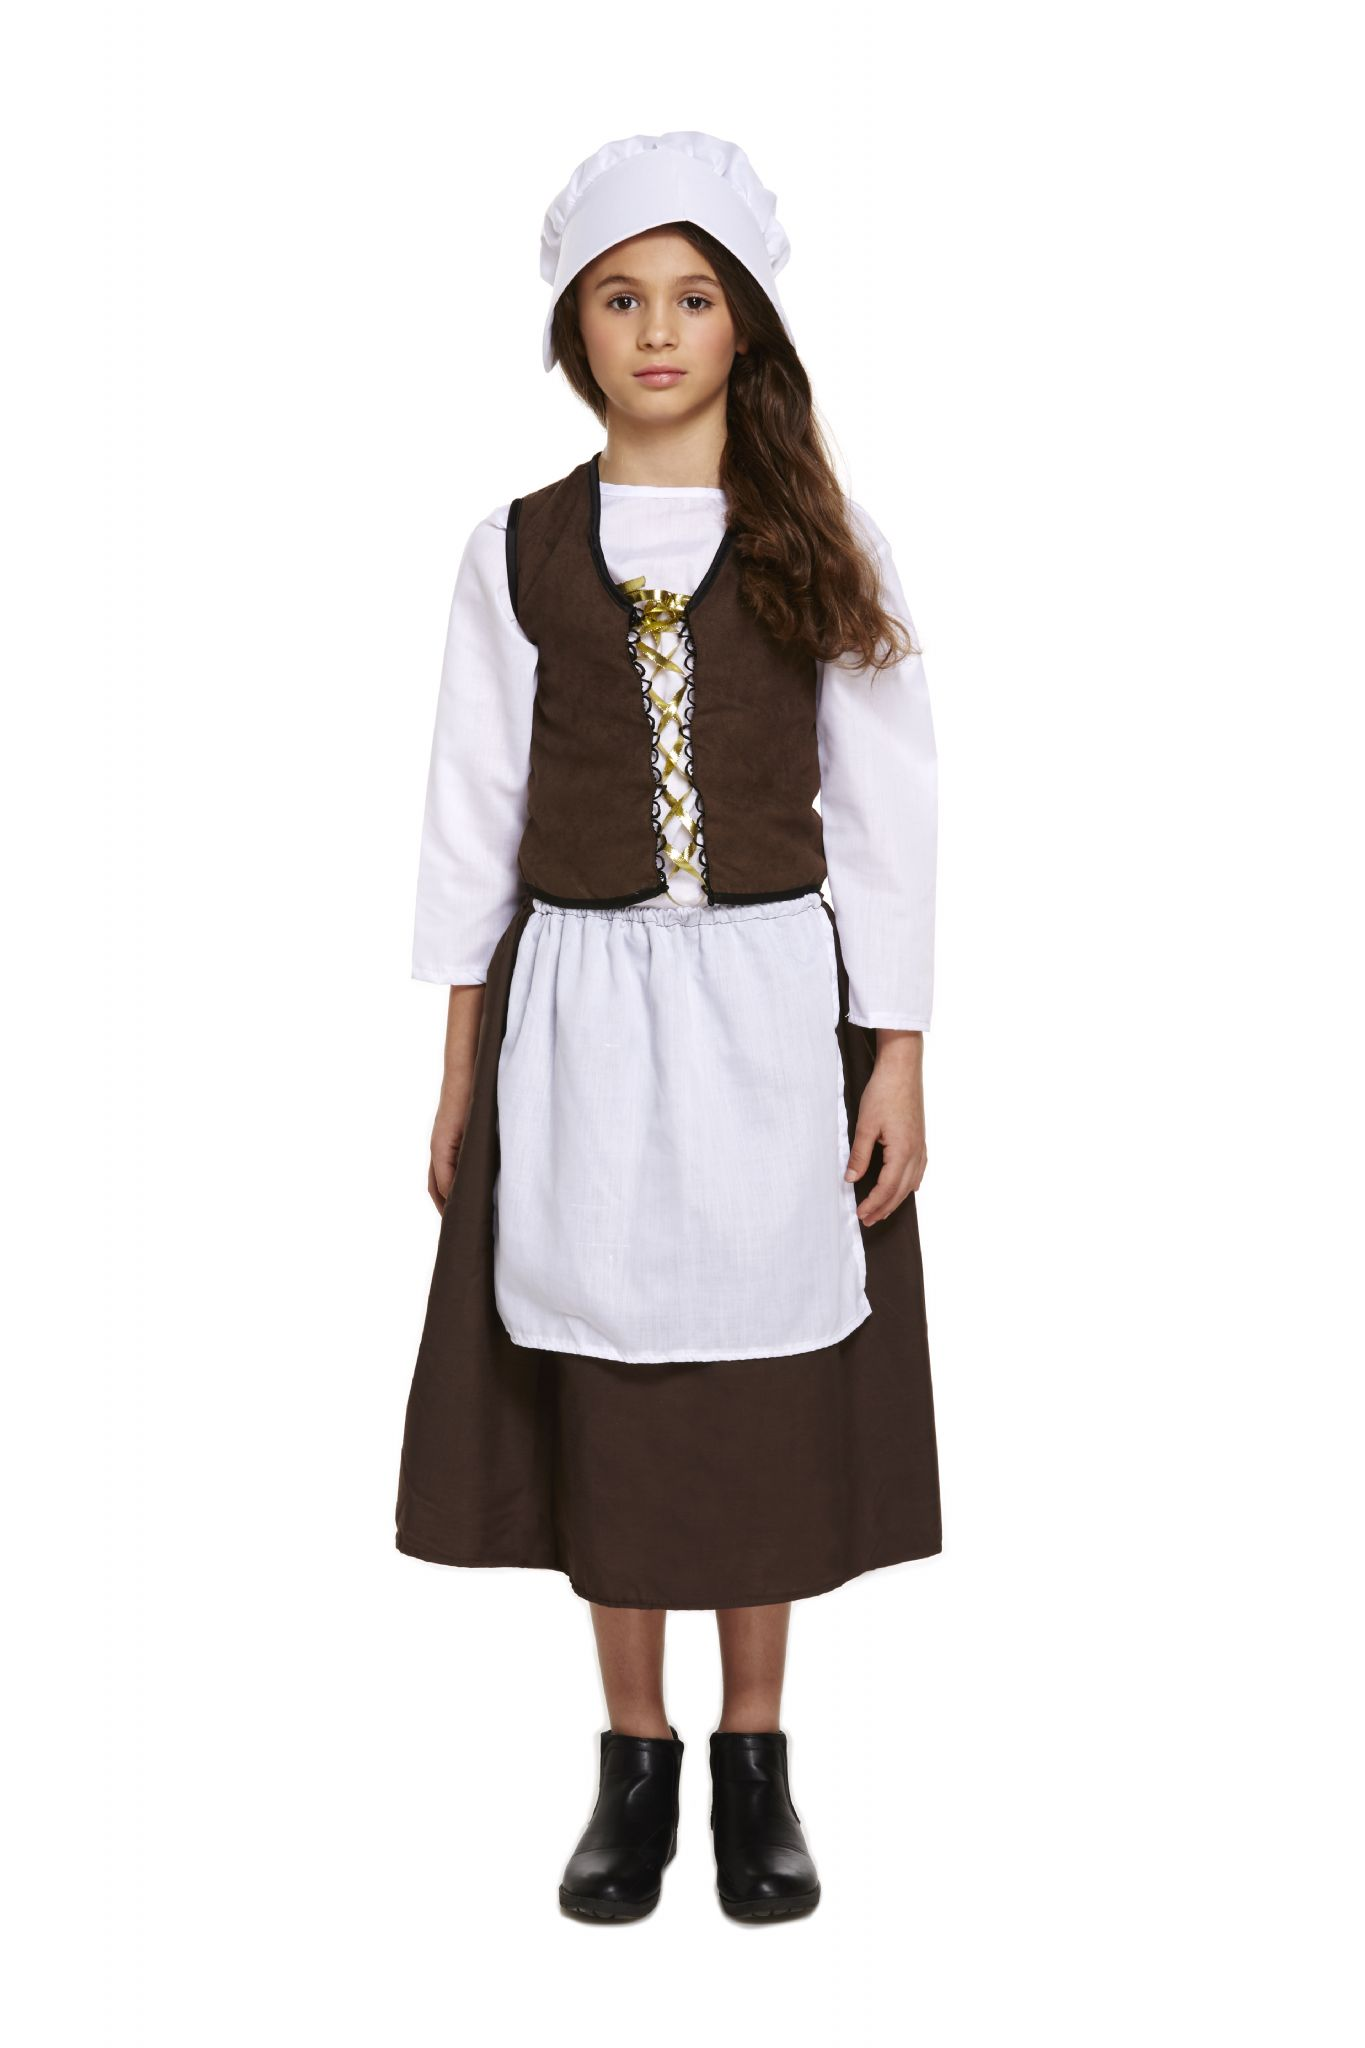 Girls Childrens Victorian Maid Costume for Poor Medieval ...